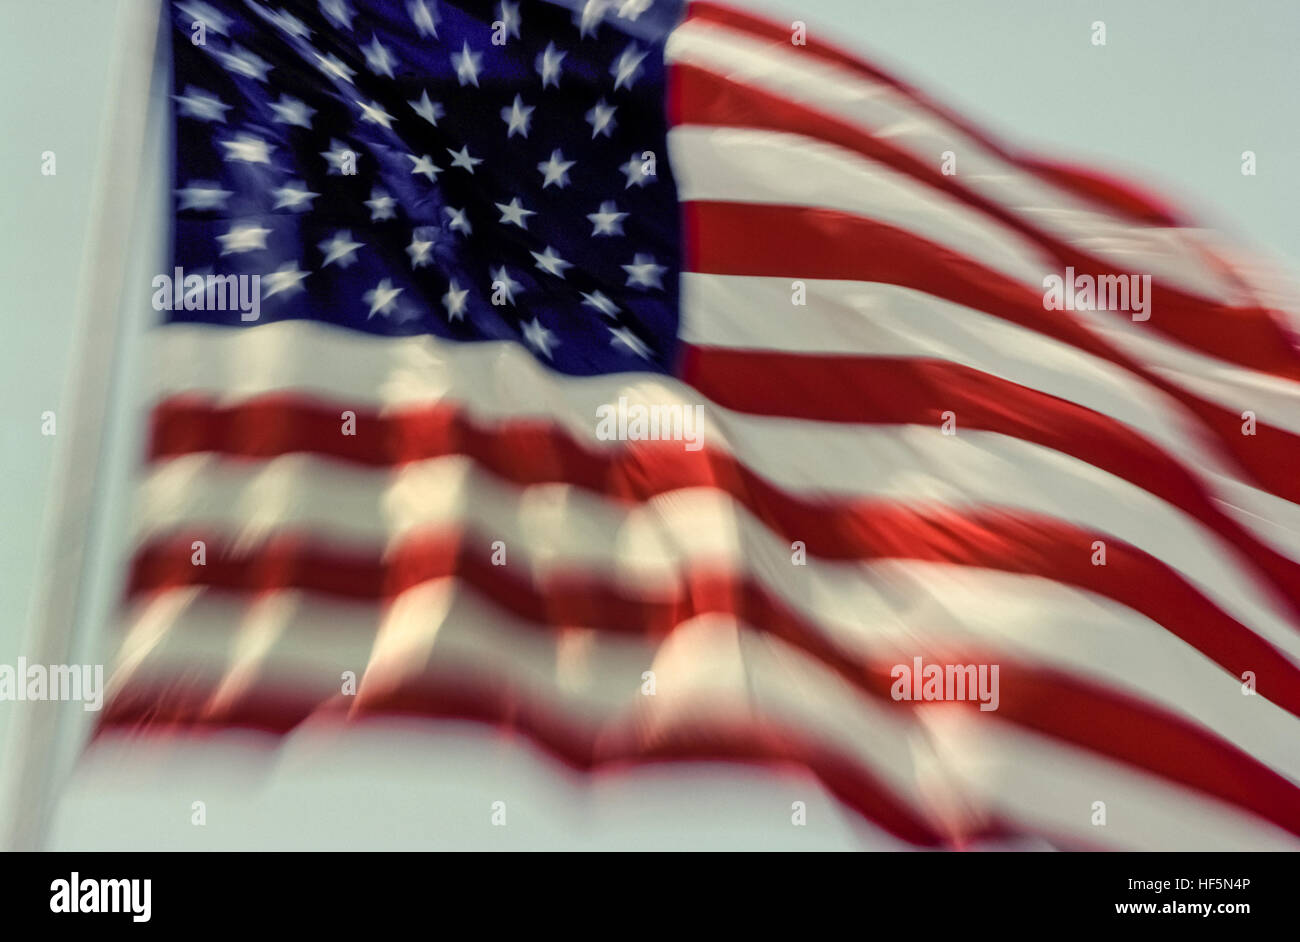 The national flag of the United States of America is known variously as the American flag, The Stars and Stripes, - Stock Image